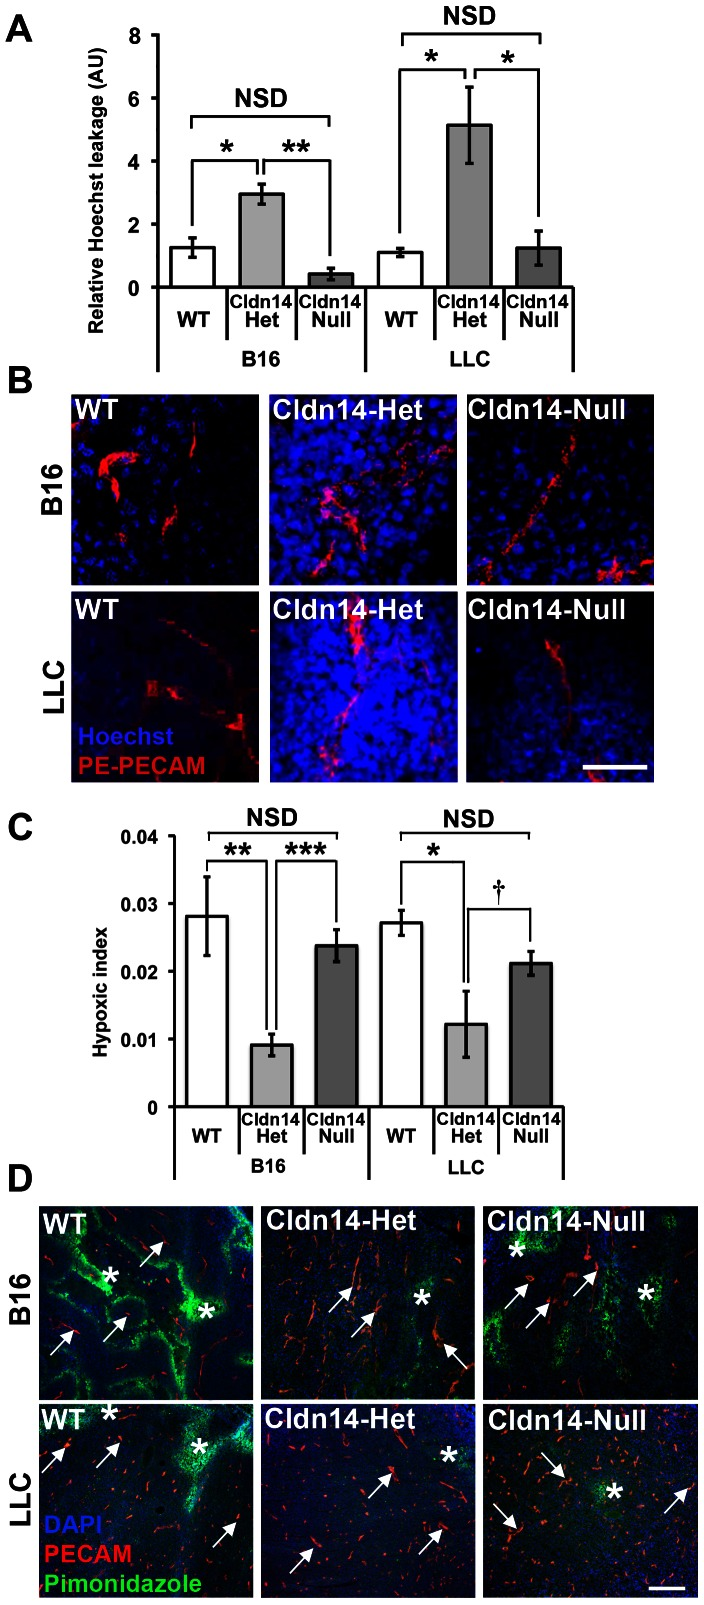 Heterozygosity for Cldn14 increases tumour blood vessel leakage and decreases intratumoural hypoxia. Wild-type, Cldn14-heterozygous and Cldn14-null mice were injected subcutaneously in the flank with 0.5×10 6 B16F10 melanoma or Lewis Lung Carcinoma (LLC) cells. ( A ) At 10 days post inoculation, PE-conjugated anti-PECAM antibody and Hoechst dye were injected via the tail vein prior to sacrifice. Midline sections (100 µm) of snap-frozen tumours were fixed, mounted and imaged using a Zeiss <t>LSM</t> 510 confocal microscope. The extent of Hoechst leakage was measured in z-stacks using ImageJ. Bars show mean Hoechst leakage relative to PECAM signal ± SEM. Blood vessel leakage is increased significantly in Cldn14-het mice when compared with WT and Cldn14-null mice. ( B ) Representative images of Hoechst (blue) and PECAM (red) detection. ( C ) Tumour-bearing mice from each genotype were injected with pimonidazole prior to sacrifice to measure hypoxic areas within the tumour. 8 µm tumour cryosections were then double stained with anti-pimonidazole antibody (green) to highlight hypoxic areas and anti-PECAM antibody to identify blood vessels. The hypoxic index was quantified relative to PECAM staining using image J software. Bars represent mean relative hypoxic index ± SEM. ( D ) Representative images of pimonidazole detection and PECAM-positive blood vessels in tumour sections. Arrows , blood vessels; Asterisks , pimonidazole-positive staining. Scale bars: A 50 µm; D 200 µm. N = 4 tumours per genotype. NSD: not statistically different, * P